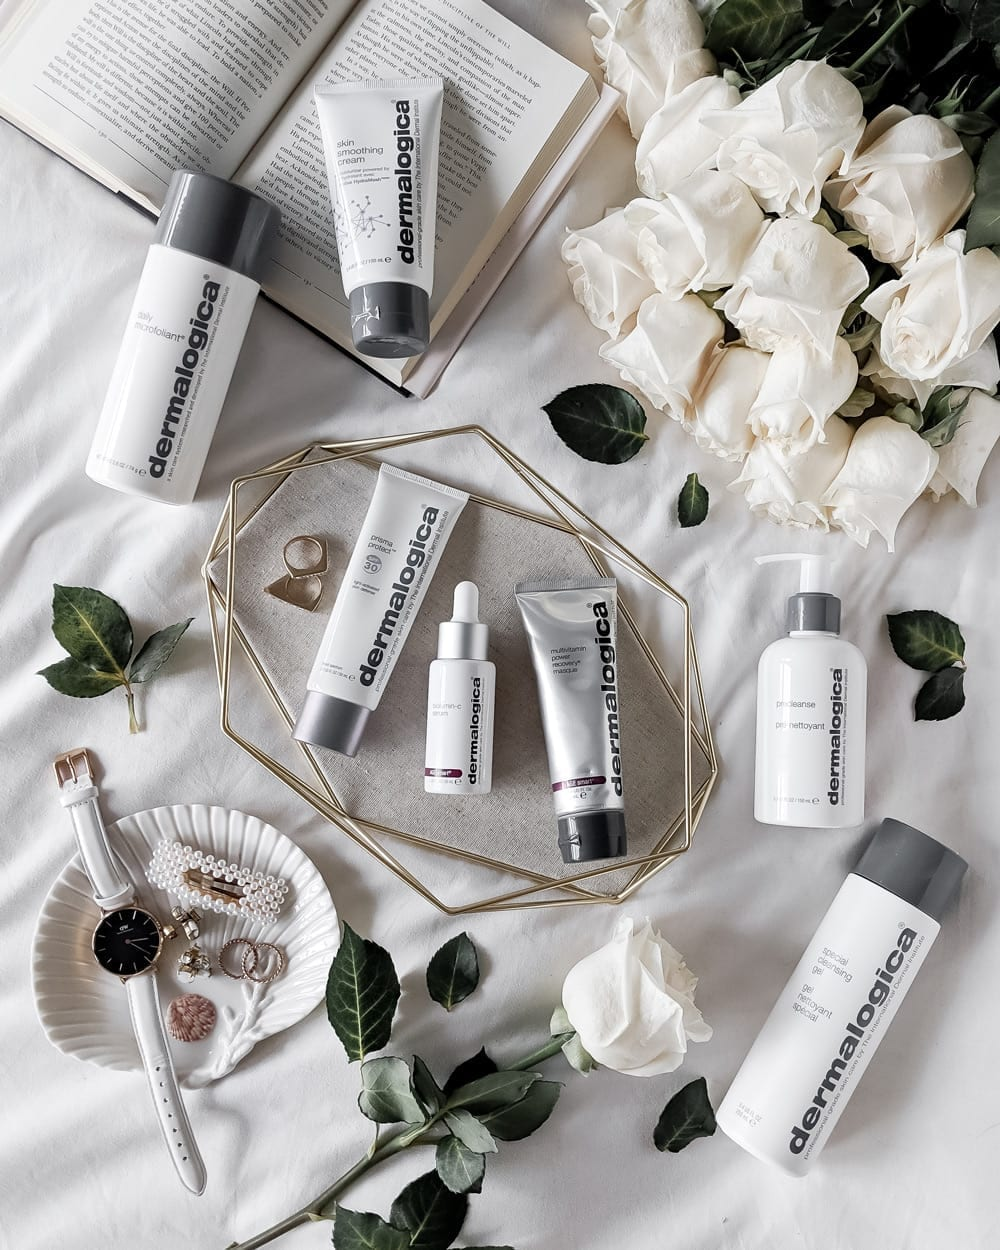 Skincare mistakes you don't know you're making - skincare from Dermalogica #flatlay #skincare #beauty